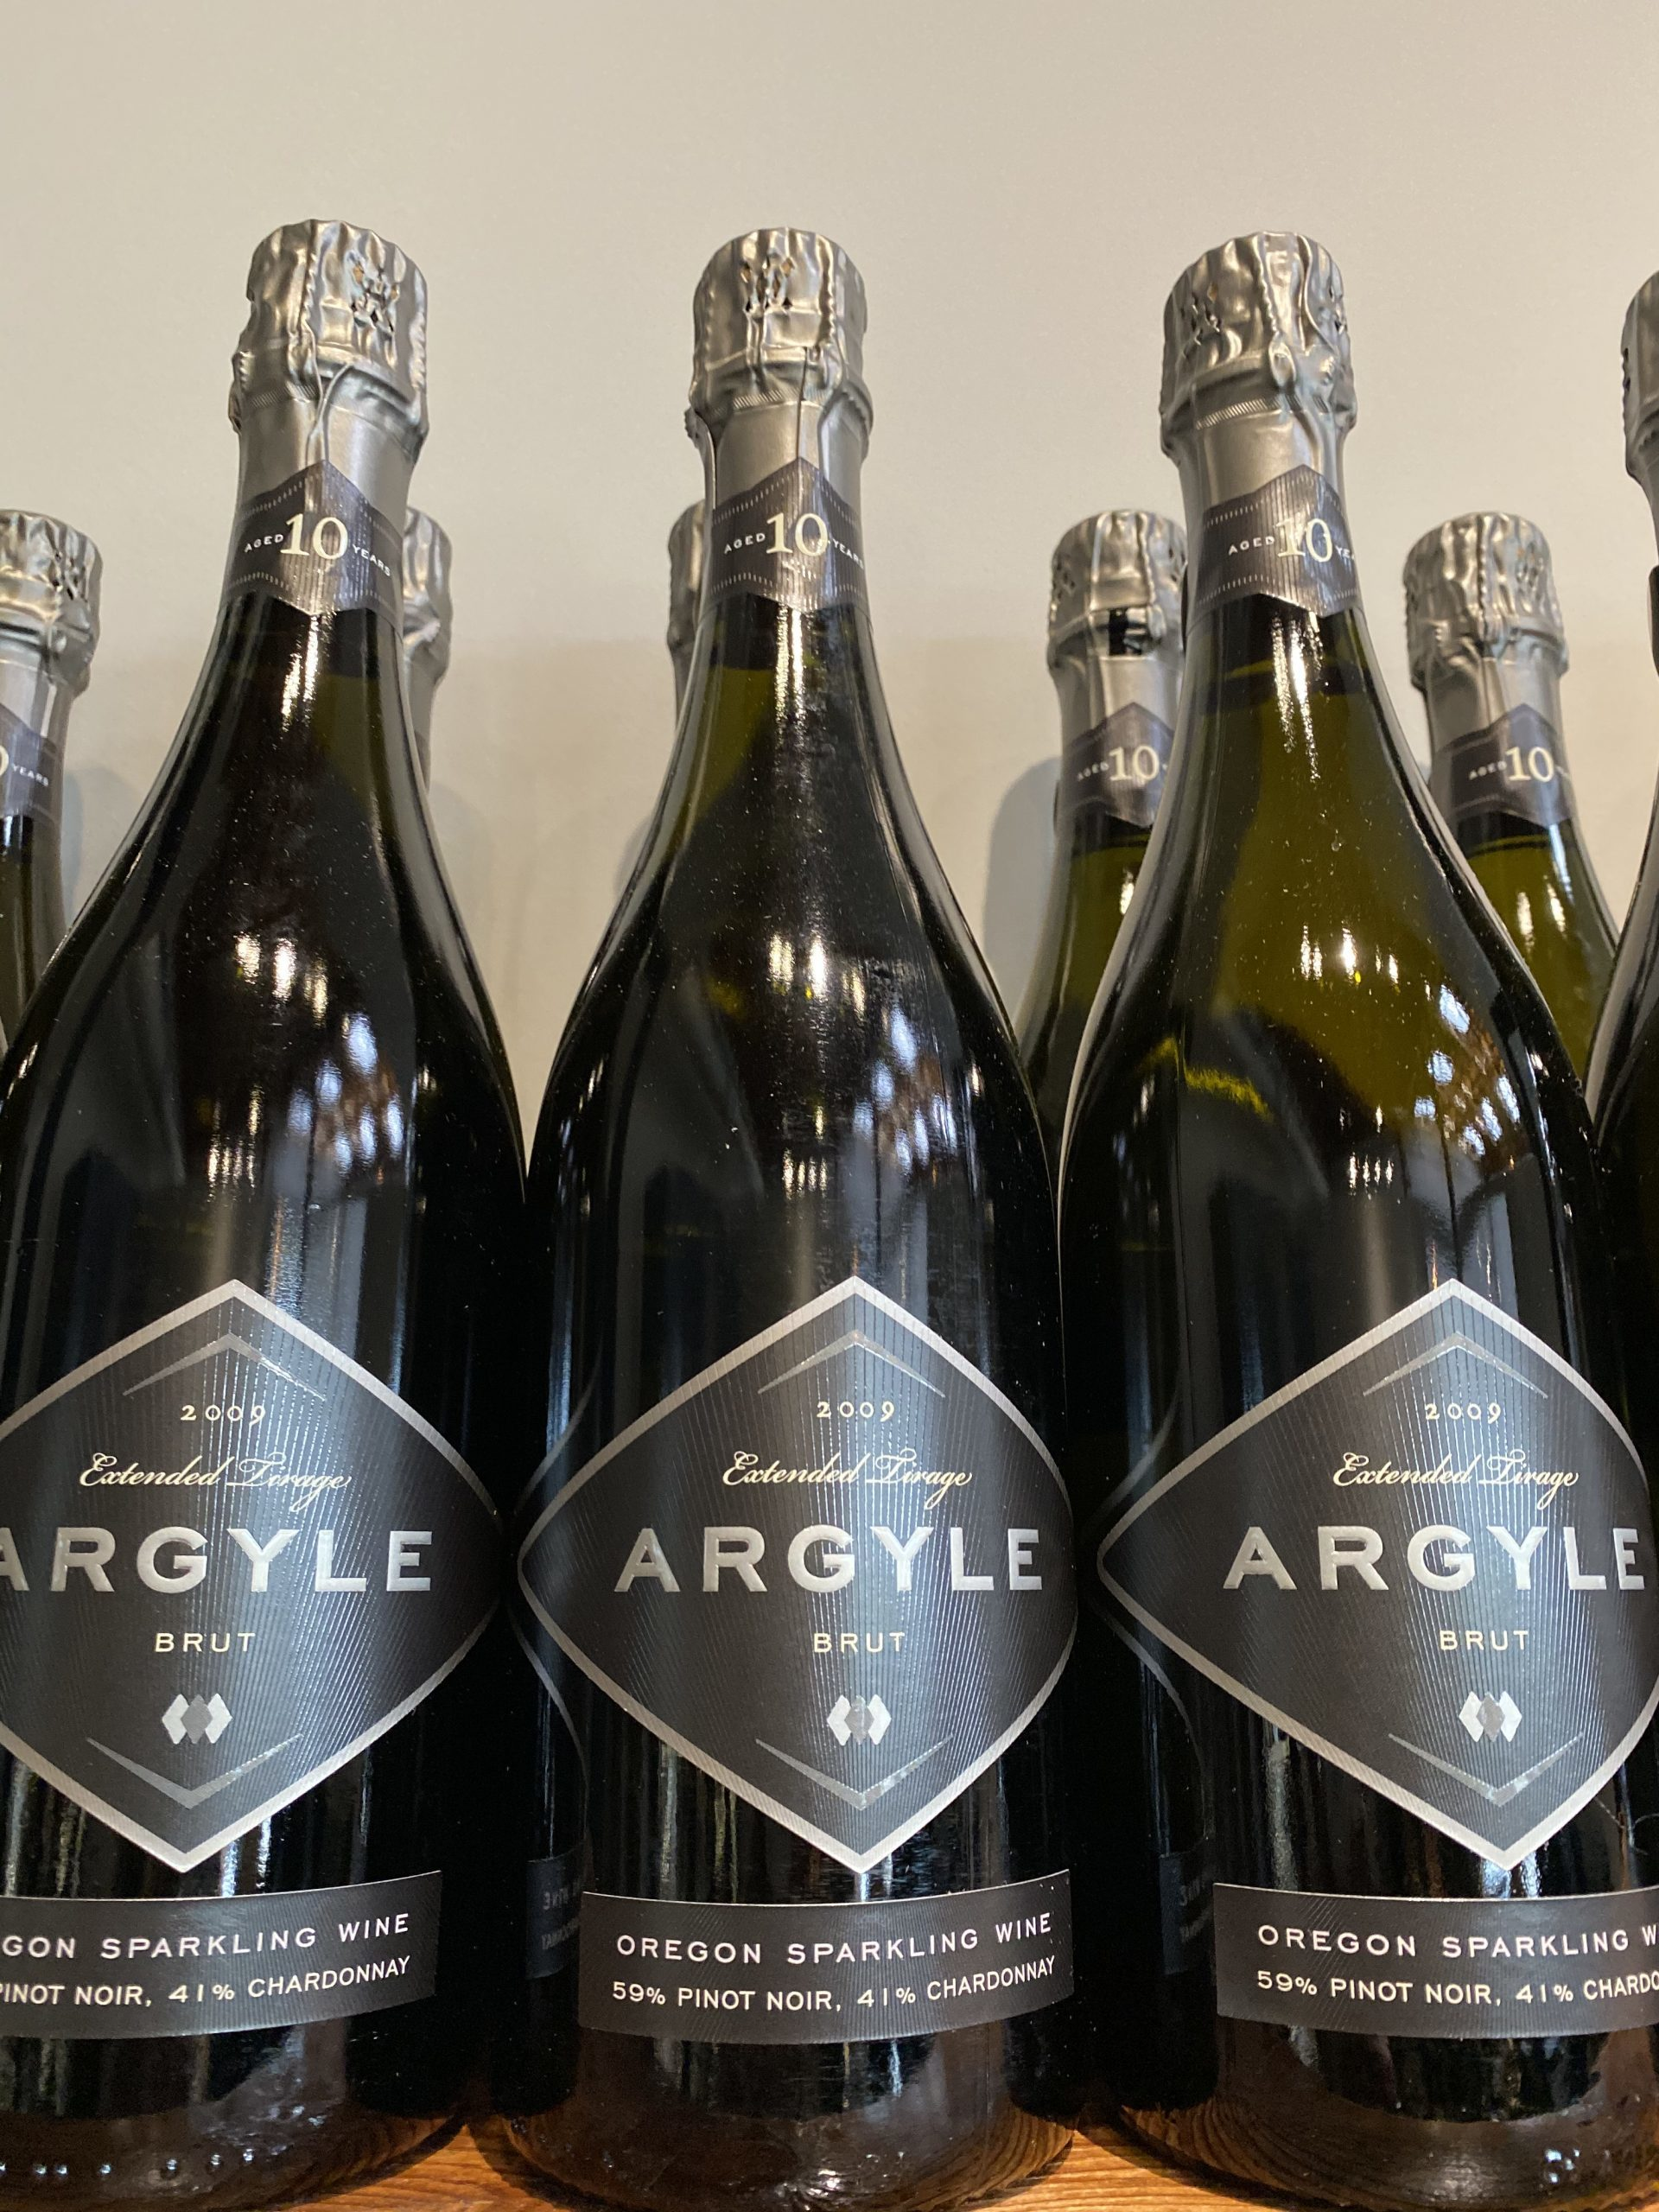 Argyle Winery 2009 Brut